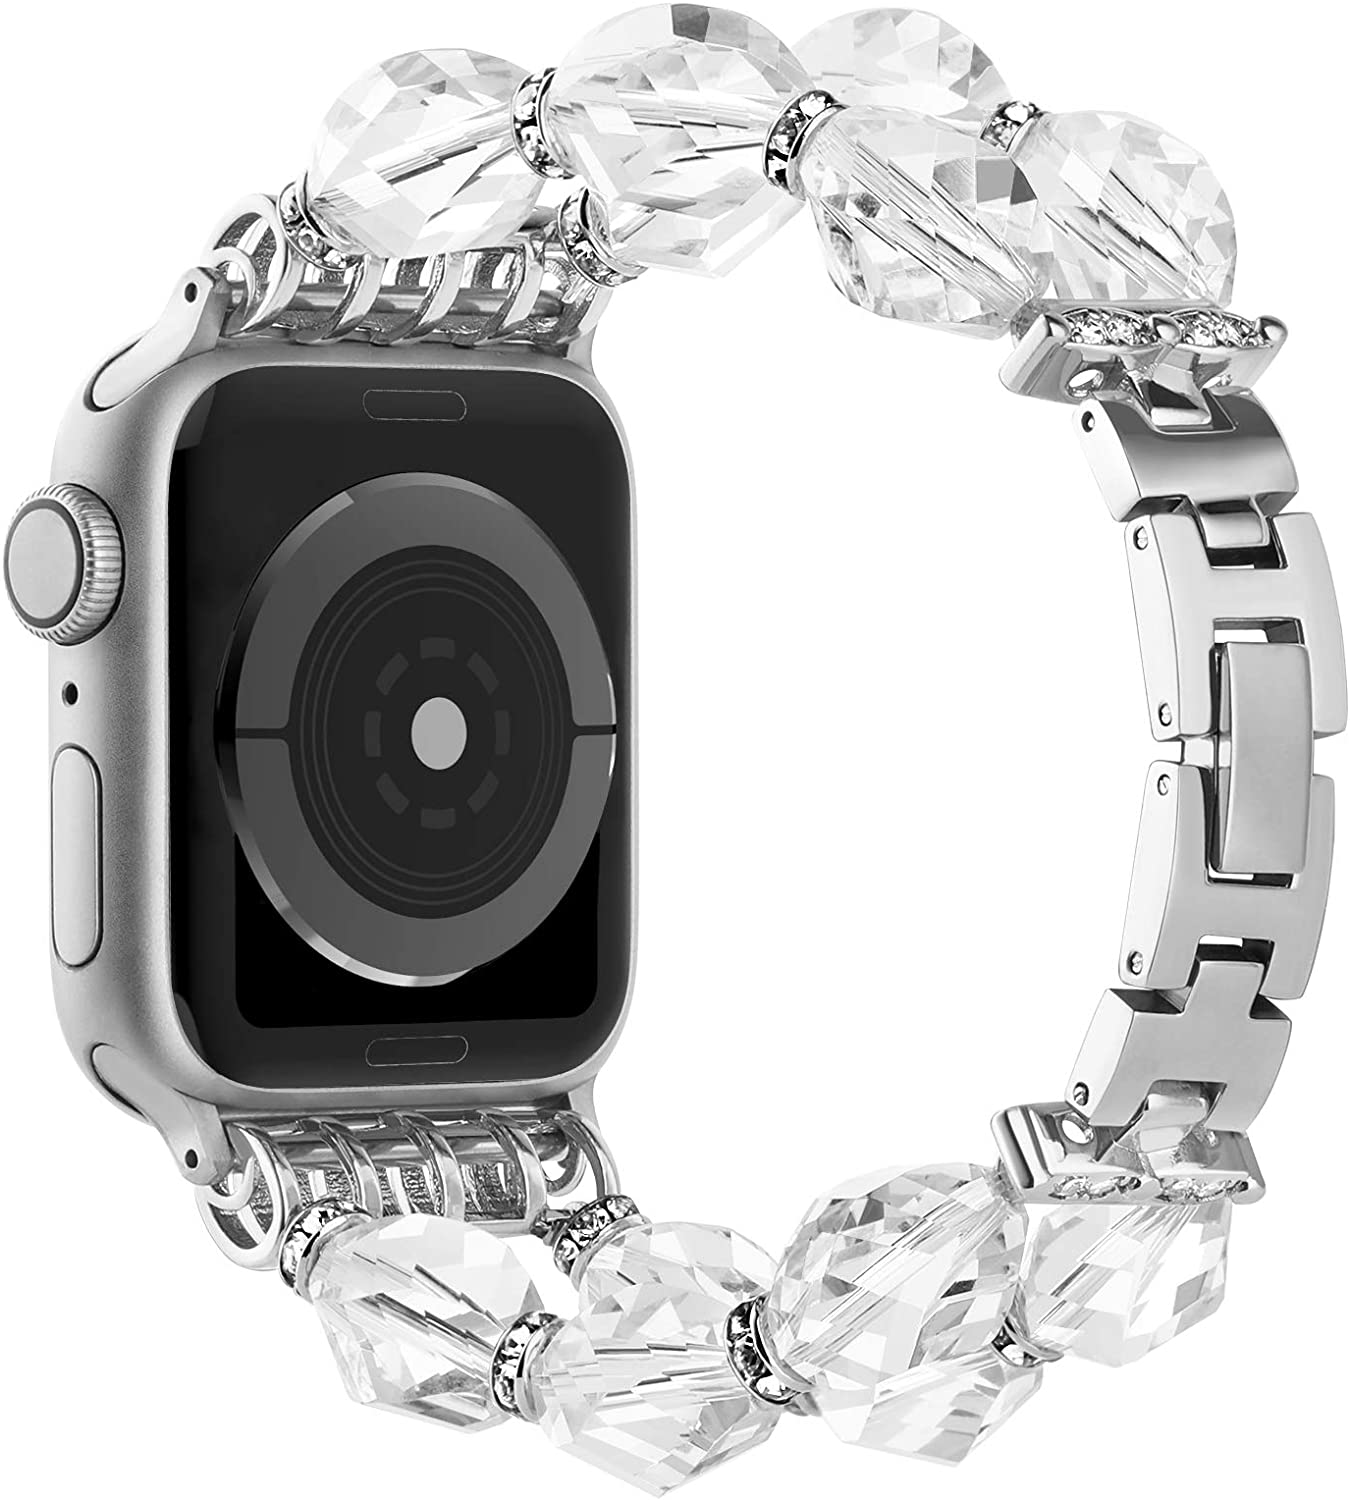 Simpeak Beaded Fashion Band Compatible with Apple Watch 38mm 40mm Series 6 SE 5 4 3 2 1, Adjustment Handmade Beaded Elastic Women Bracelet with Buckle Replacement for iWatch 38 40, White